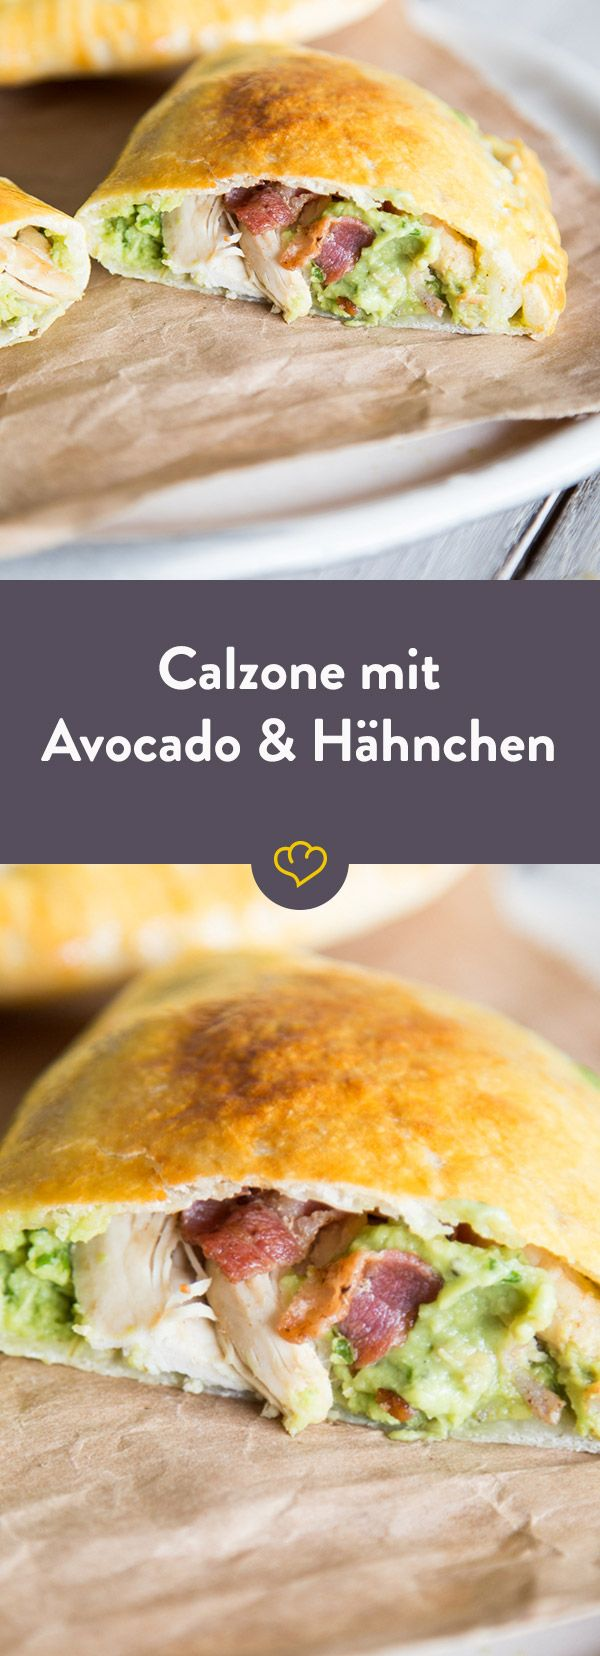 Photo of Hearty calzone with avocado, chicken and bacon